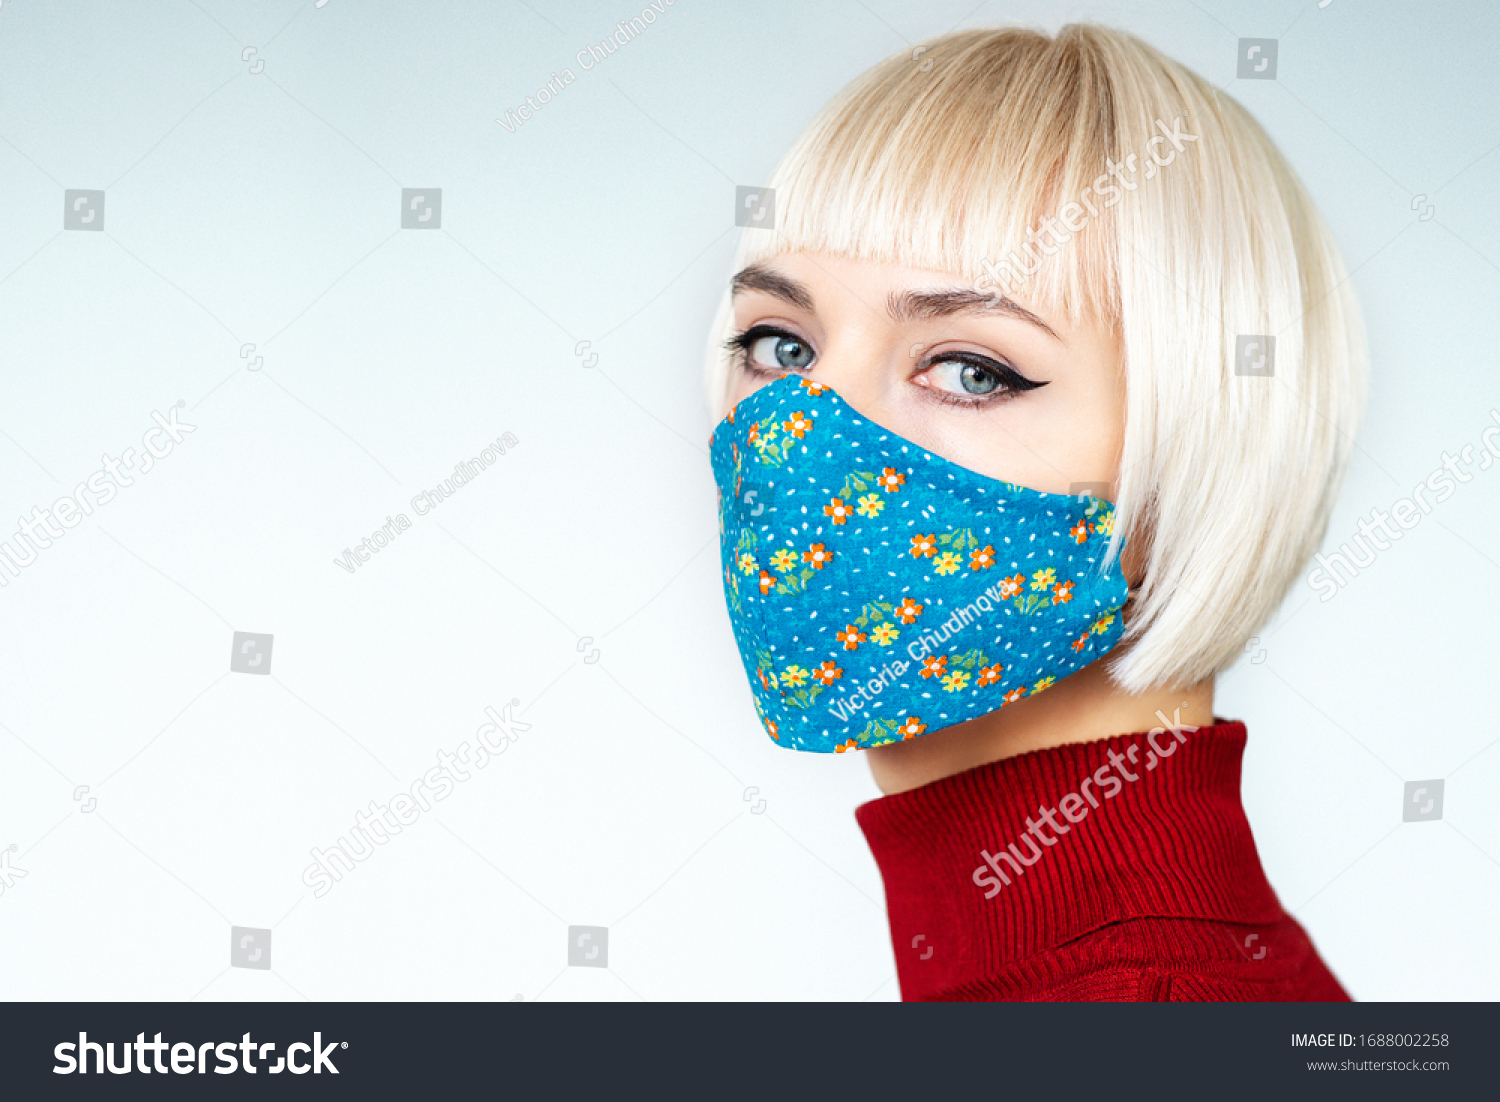 Woman wearing stylish handmade protective face mask. Fashion during quarantine of coronavirus outbreak. Copy, empty space for text